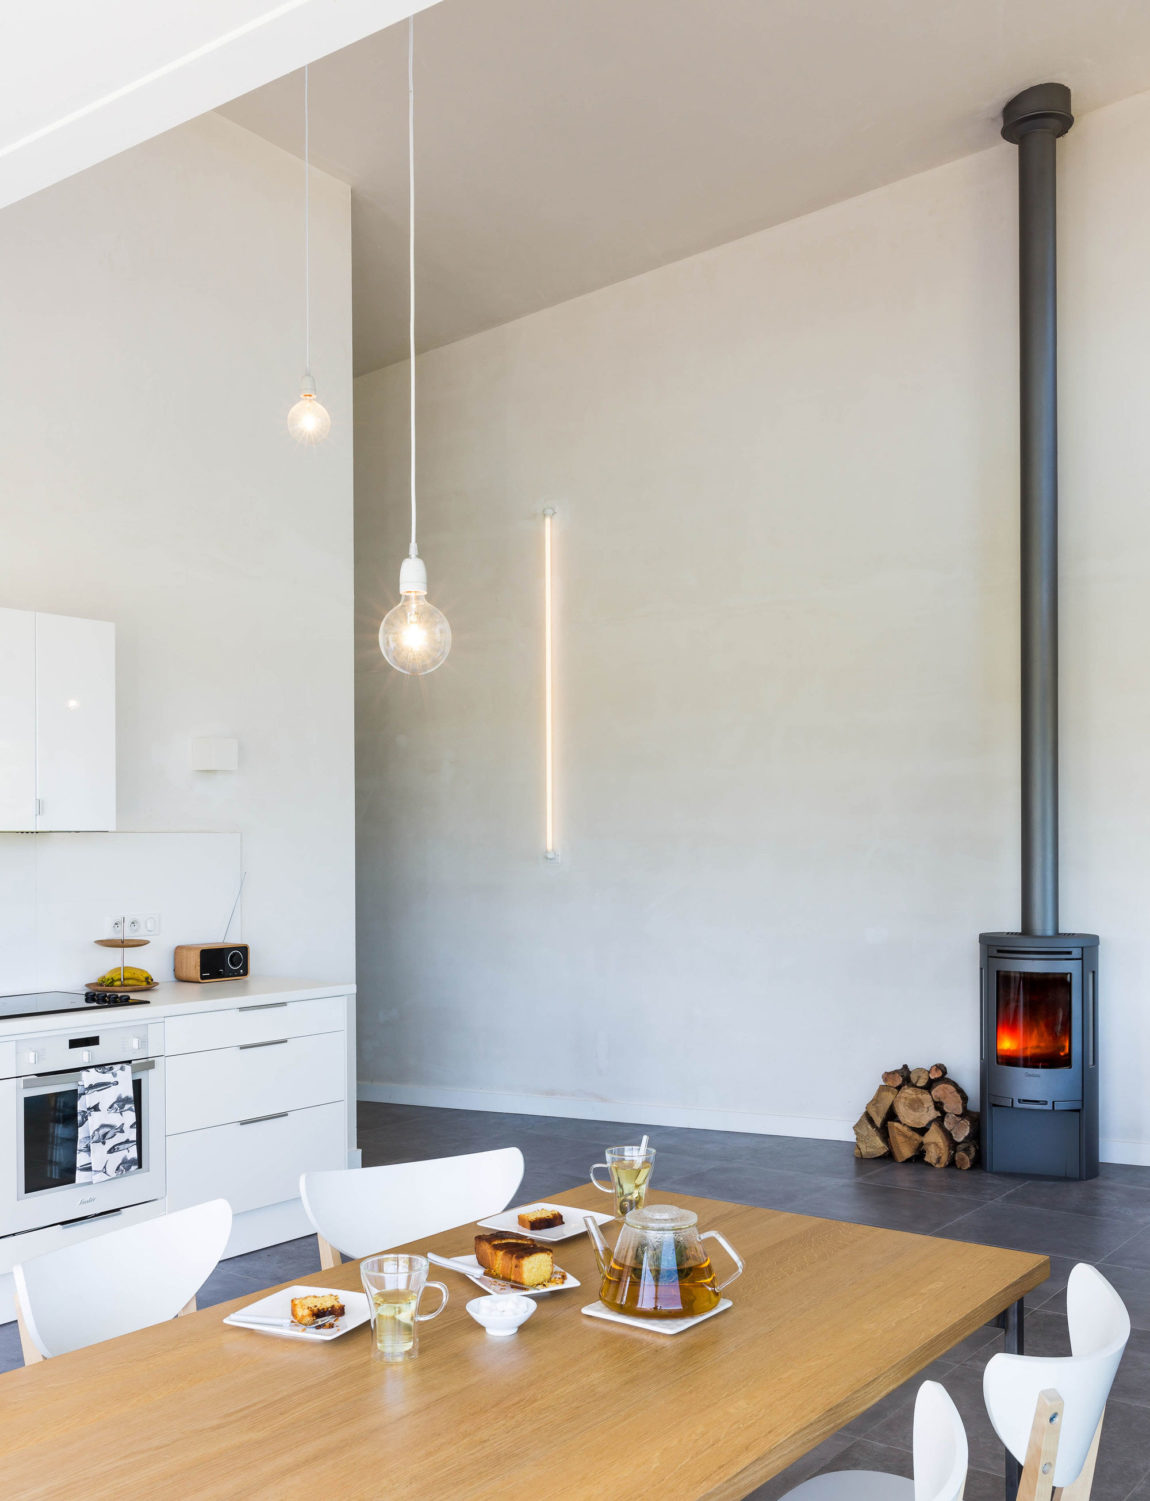 House for a Photographer by Studio Razavi Architecture (18)